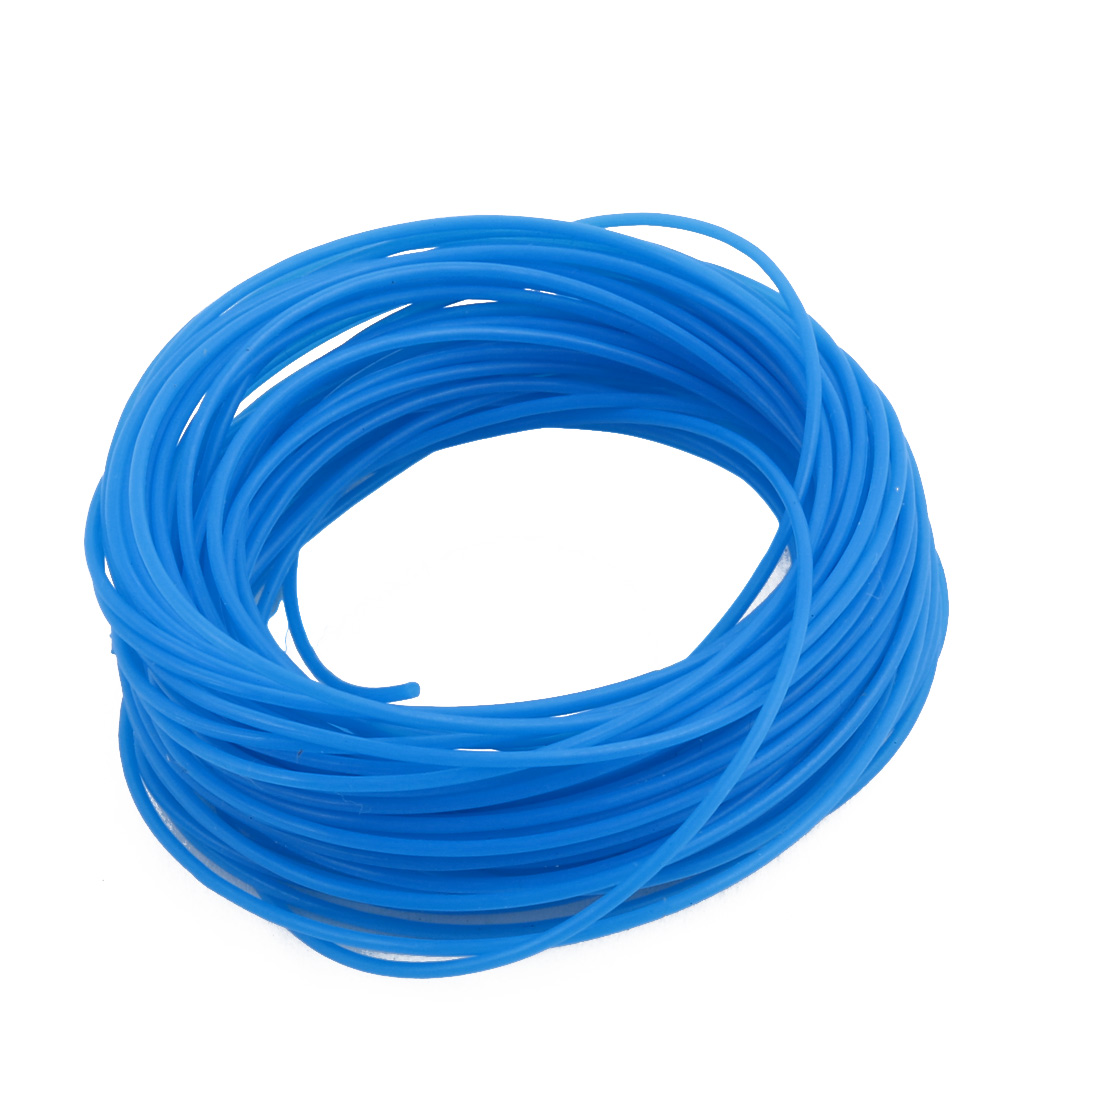 0.71mmx1.01mm PTFE Resistant High Temperature Blue Tubing 10 Meters 32.8Ft